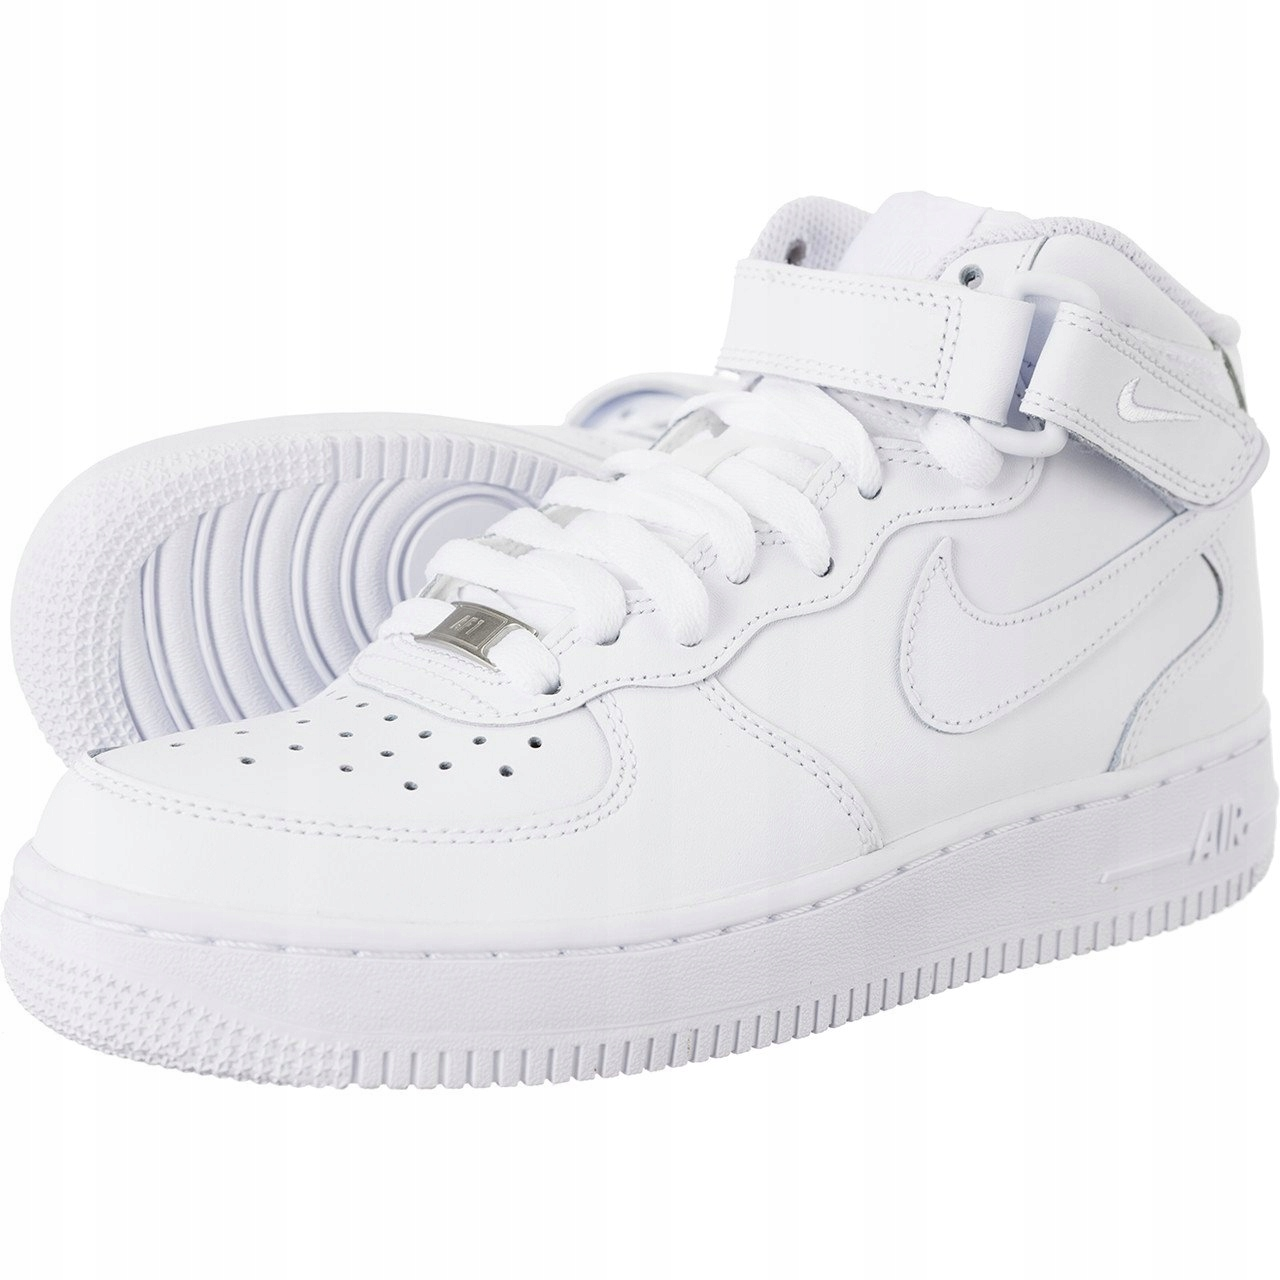 Kids Casual Shoes : Buty Nike Air Force 1 High LV8 2 JR